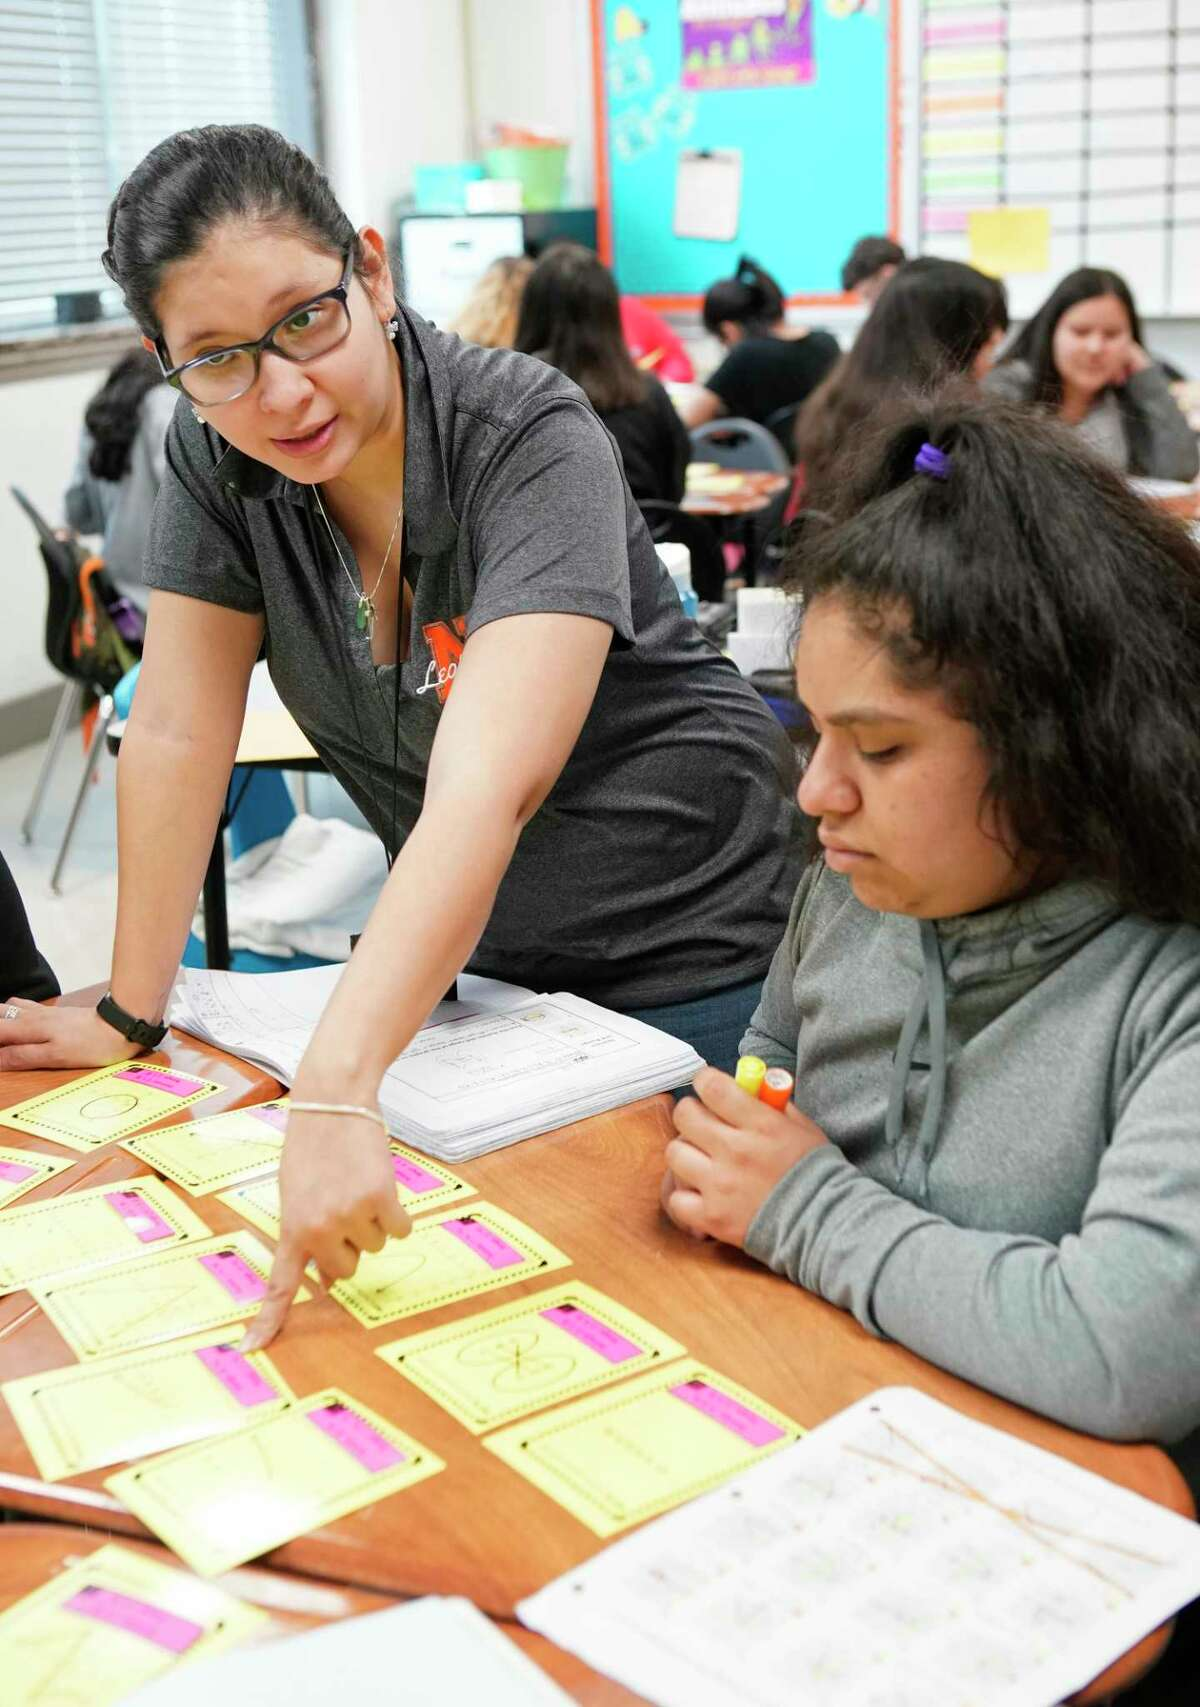 Navarro Middle School teacher Ana Steen, pictured in 2019, works with eighth-grader Jazzmin Gutierrez and others at her table during an algebra class at the Houston ISD campus. Navarro is one of 13 neighborhood middle schools that does not have a magnet program, making it harder to attract students who would bring more money to the east side campus.